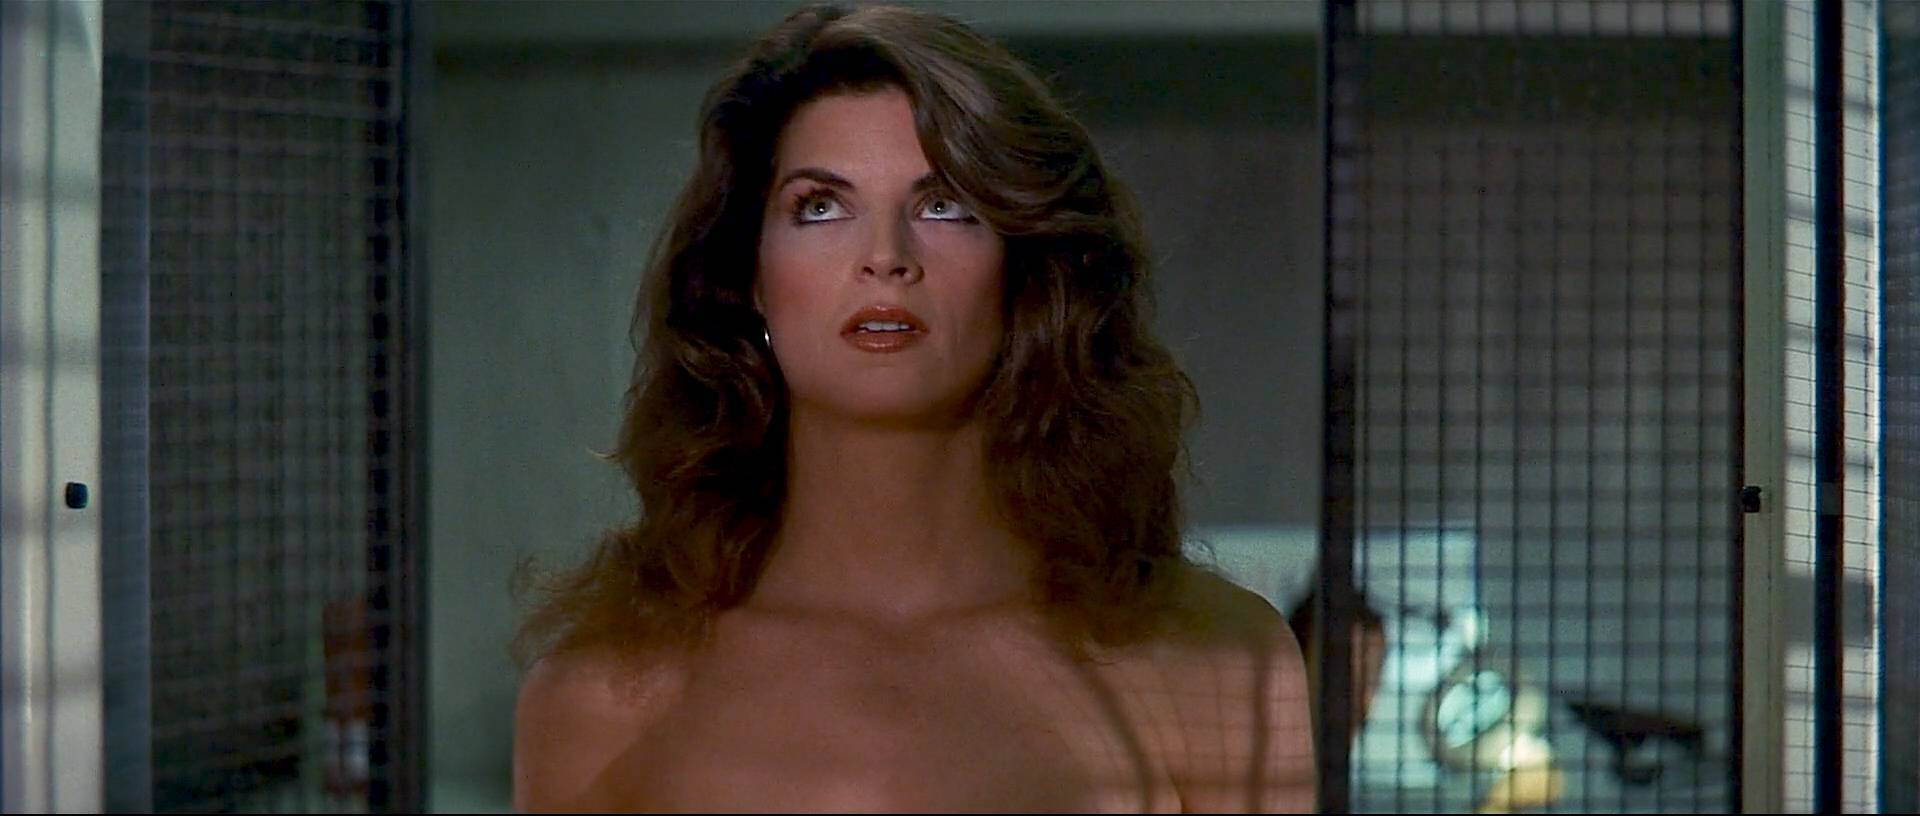 Kirstie Alley Hot And Cec Verrell Nude Topless - Runaway -8334